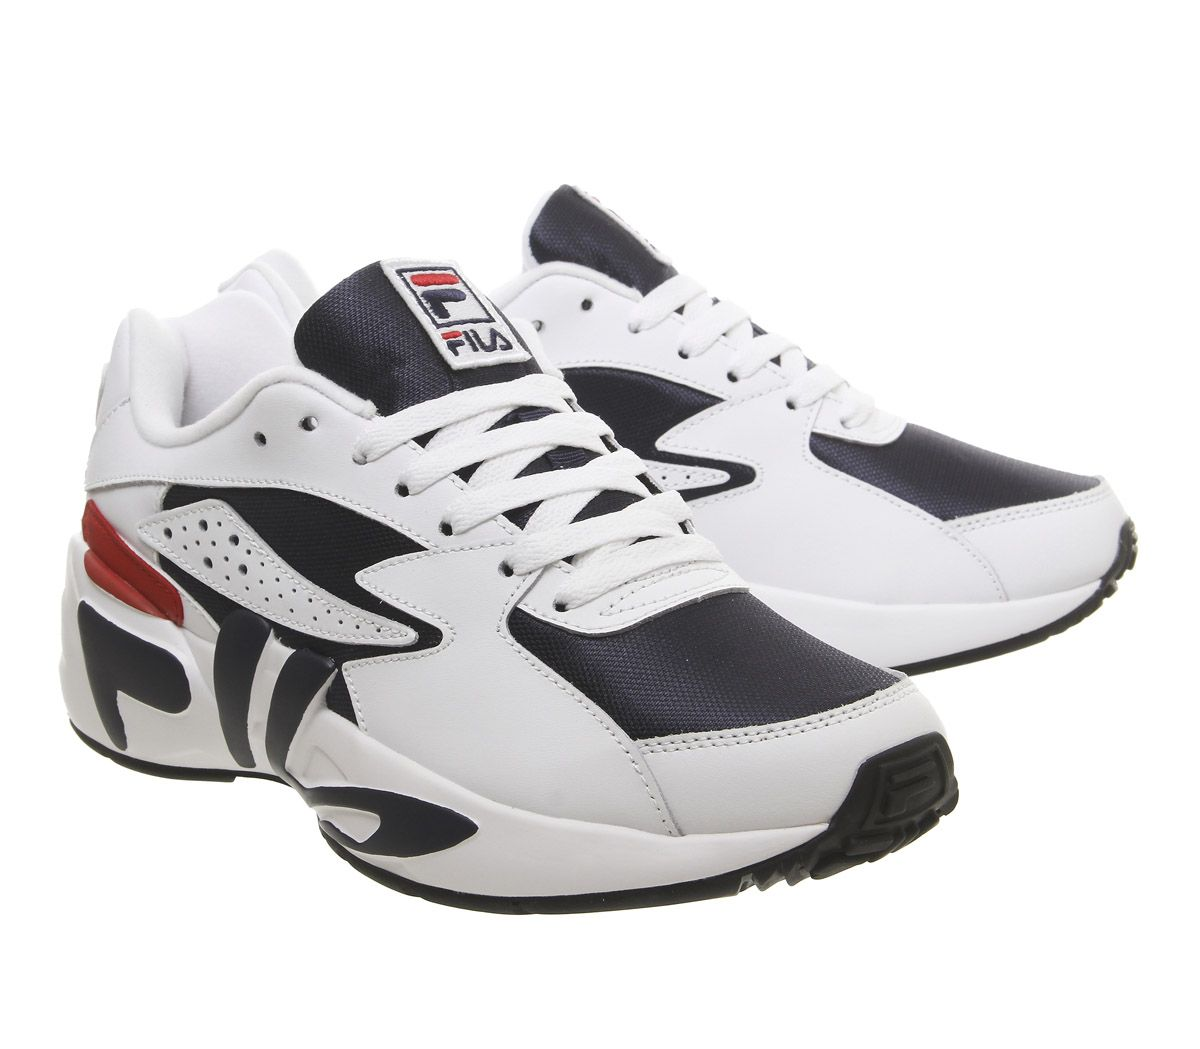 Details about FILA MINDBLOWER Sports Shoes White Navy Red Sneakers- show original title